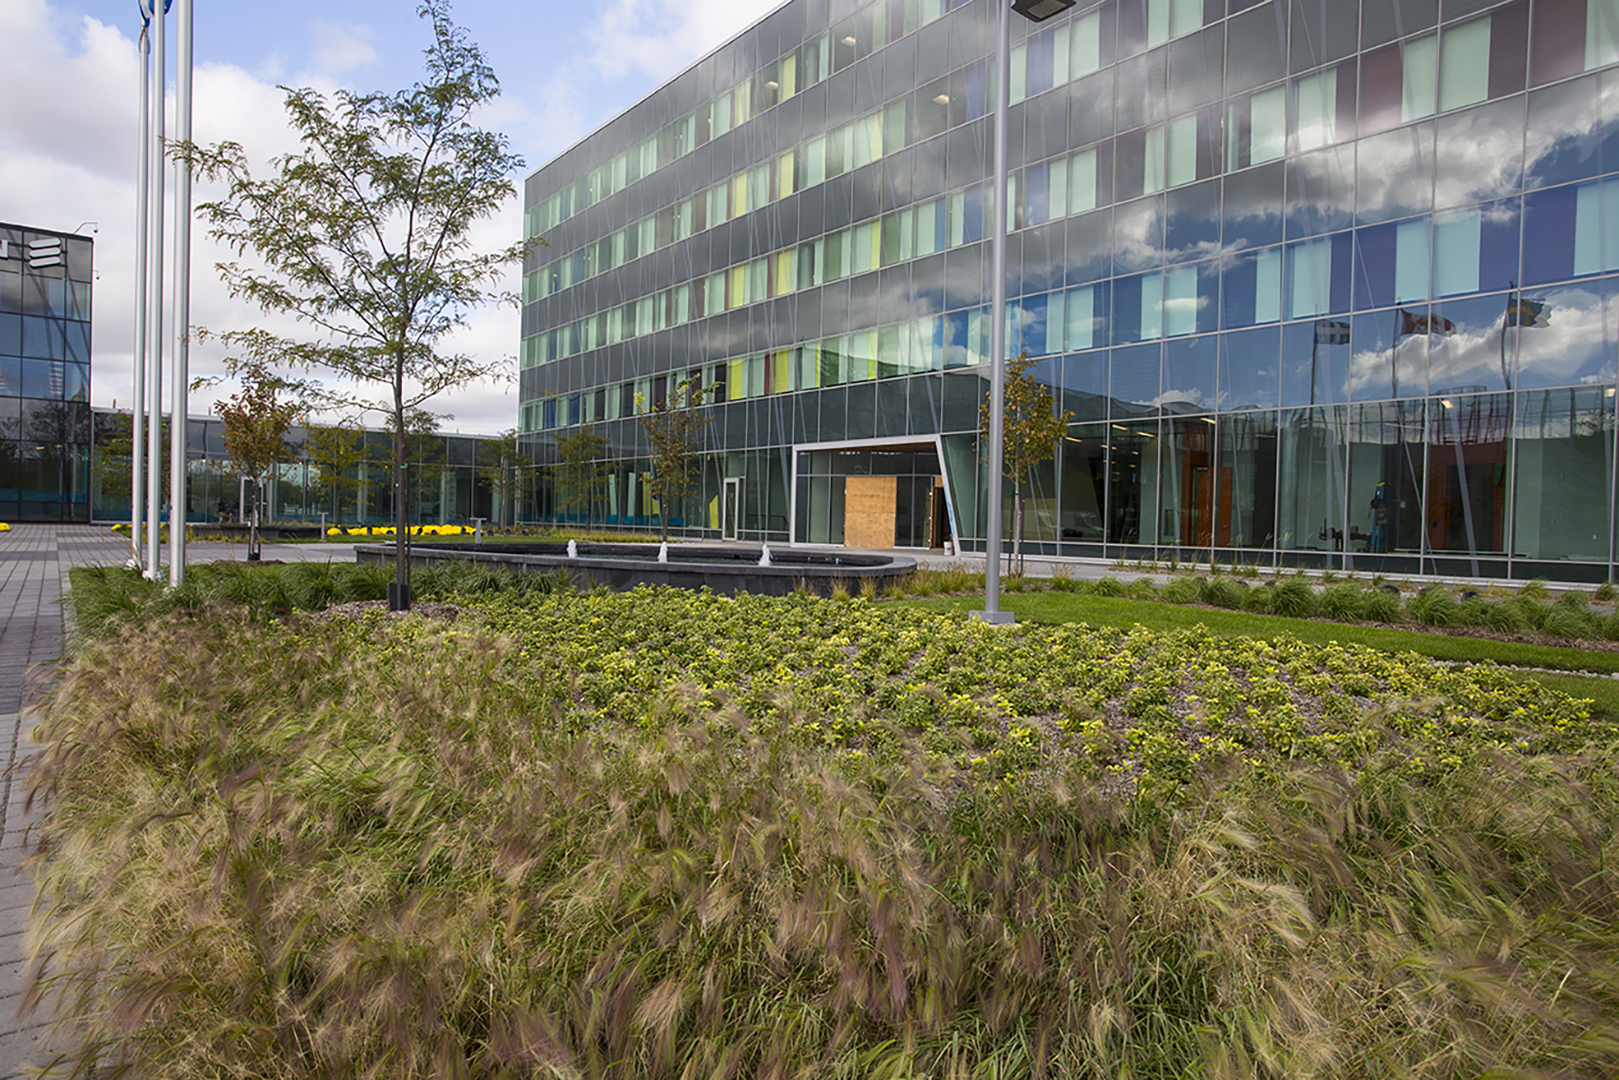 34-campus-corporatif-ericsson_11-3_groupe-marchand-architecture-design-inc-_anderson-lima_04